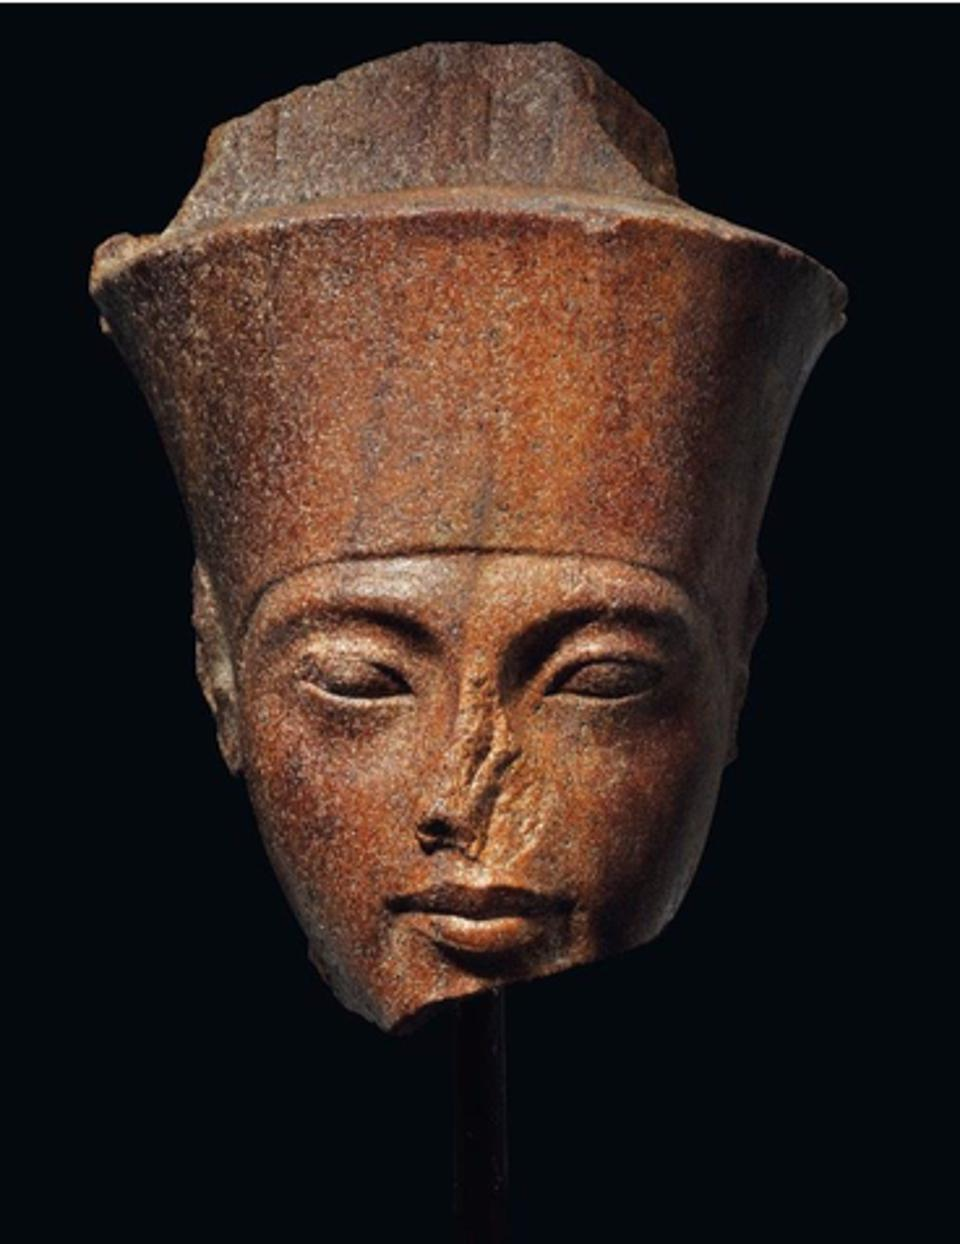 The Pharaoh Tutankhamen 1333-1323 BC.